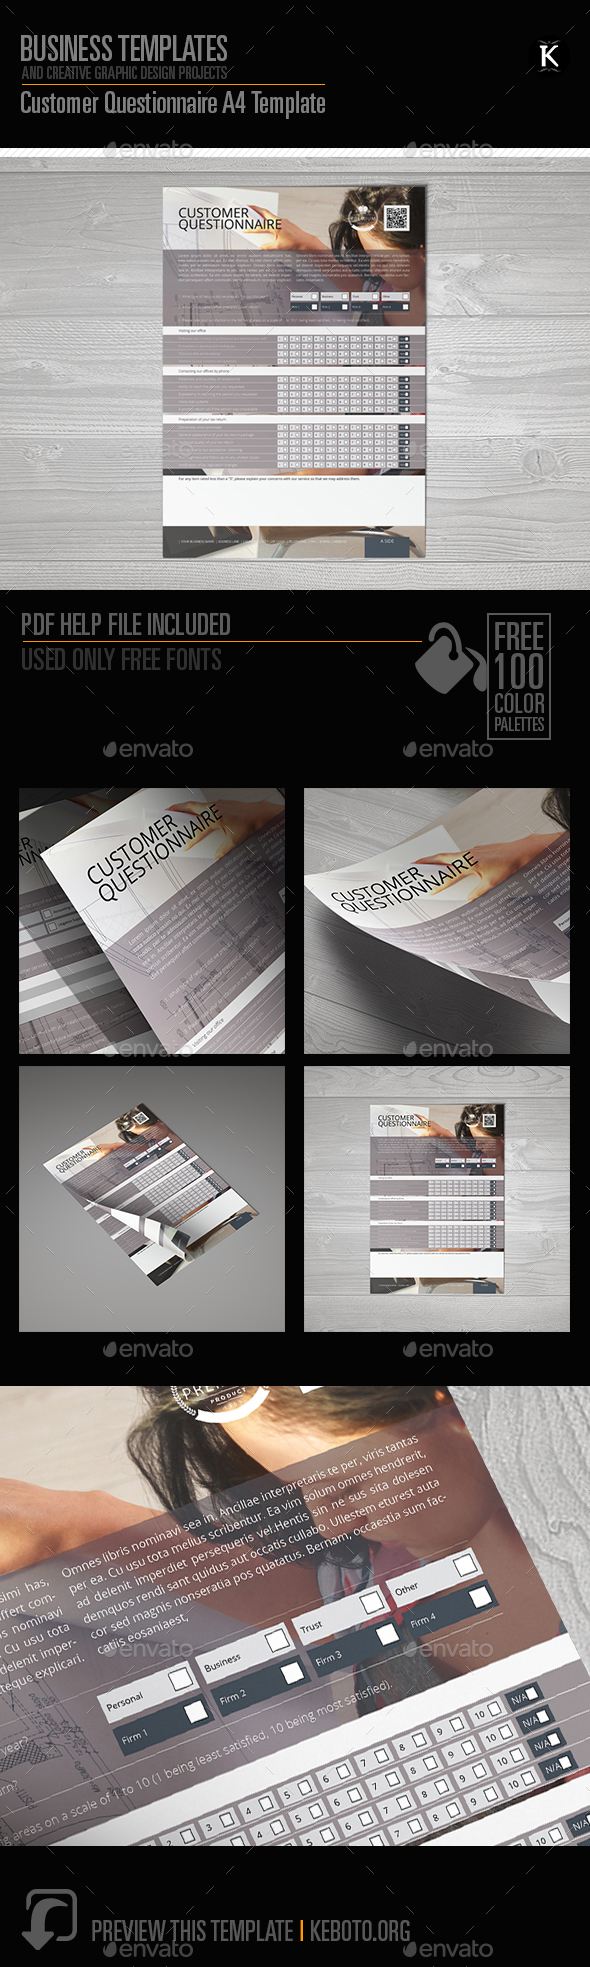 InDesign Questionnaire Template Graphics, Designs & Templates